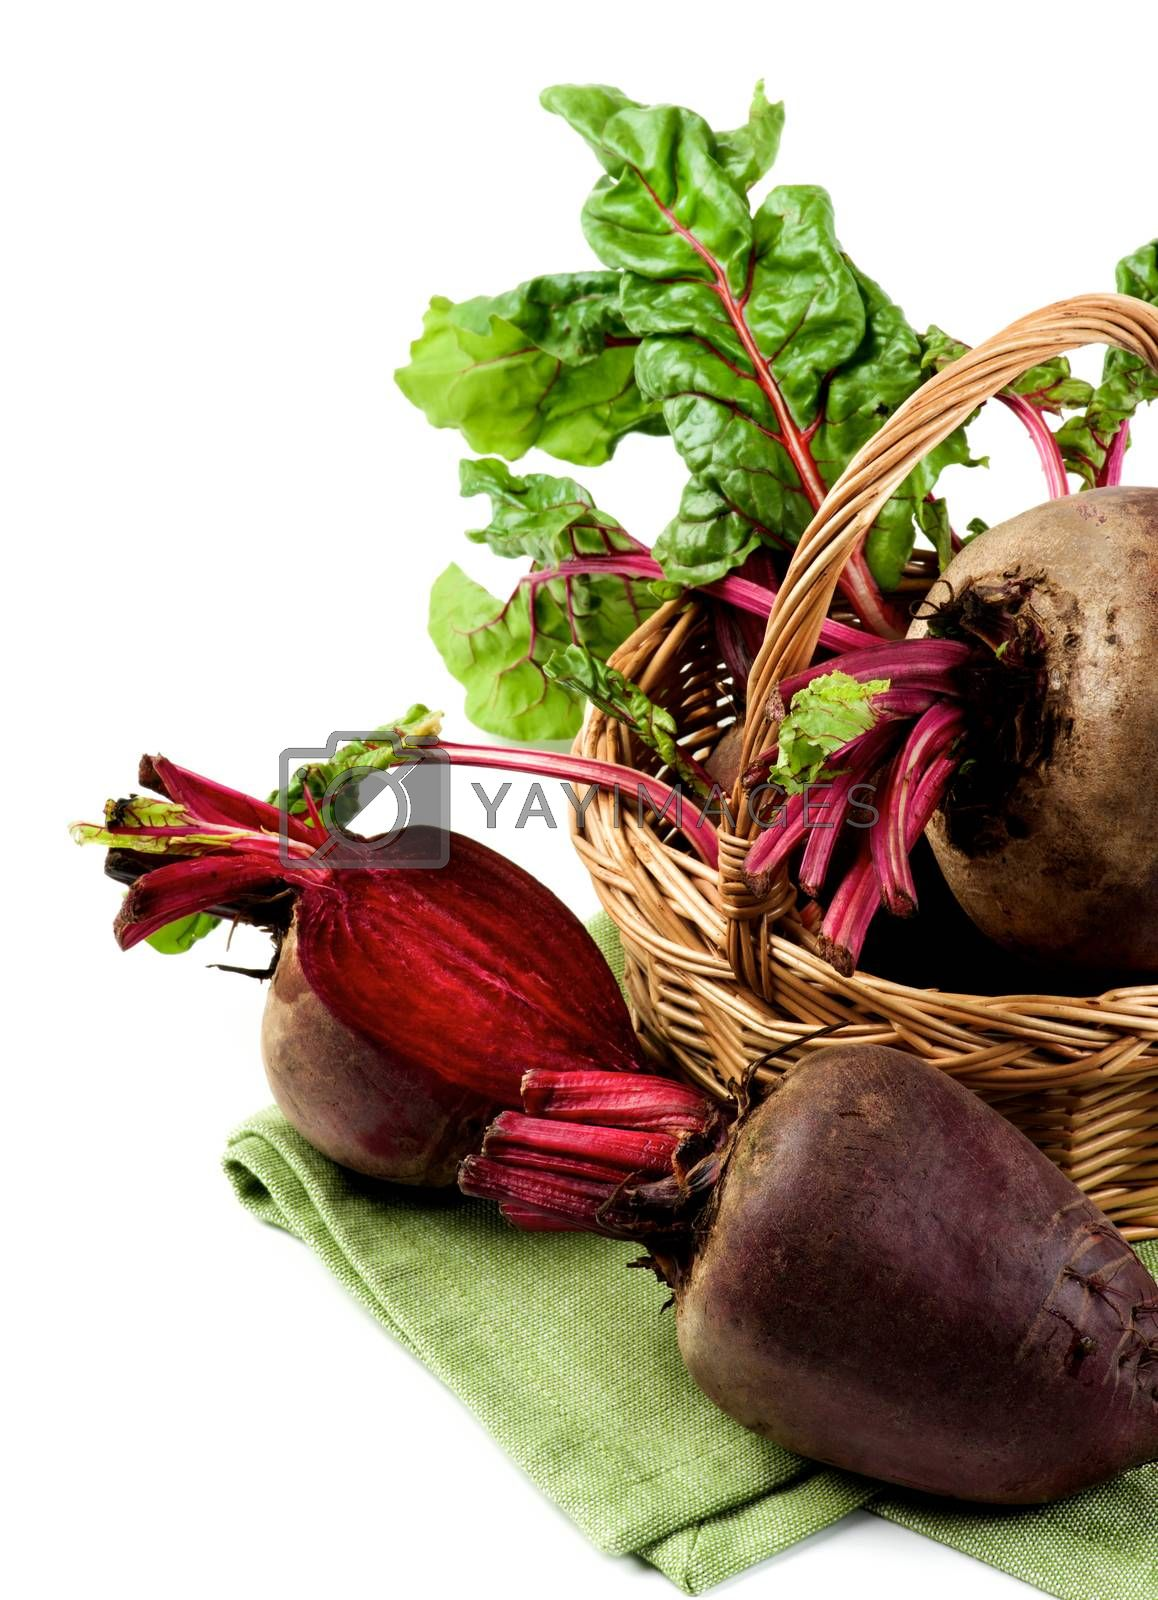 Arrangement Fresh Raw Organic Beet Roots with Green Beet Tops in Wicker Basket on Napkin isolated on White background